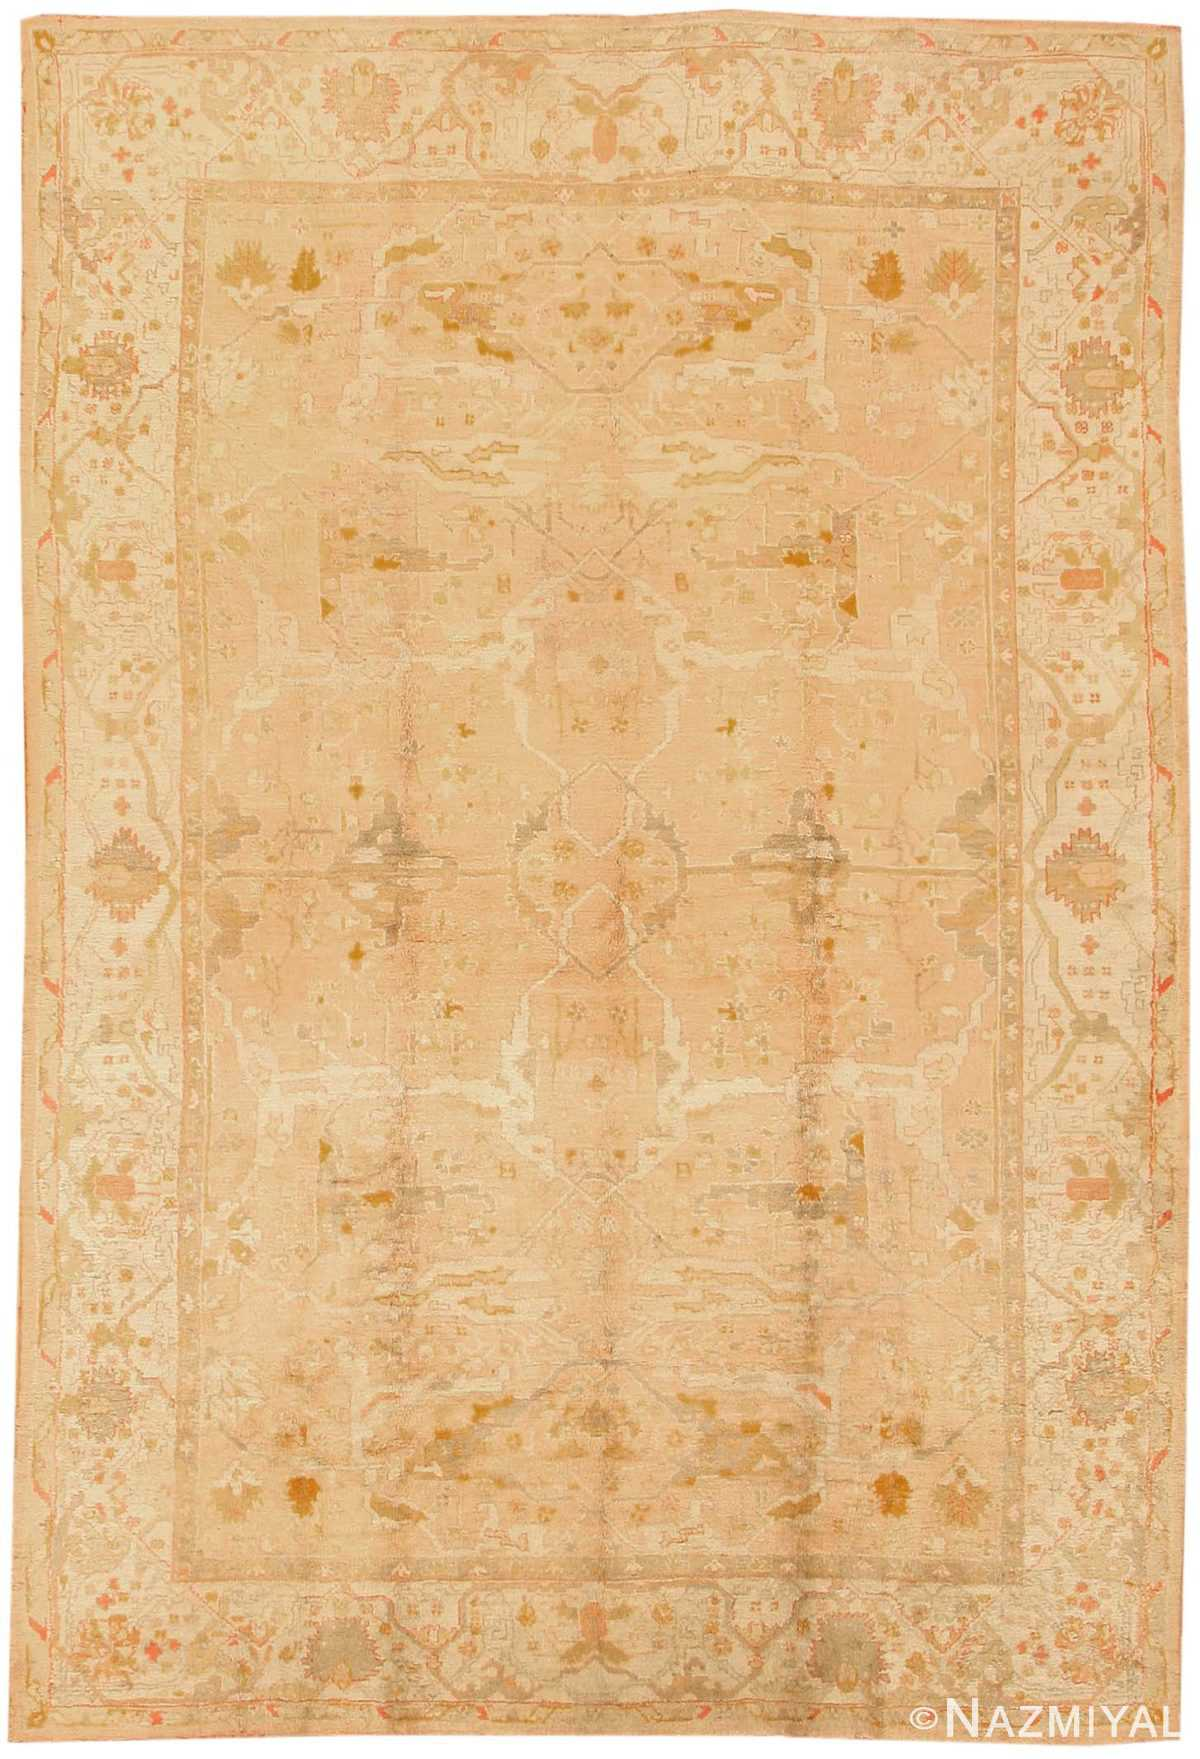 Antique Oushak Turkish Rug 43364 Nazmiyal